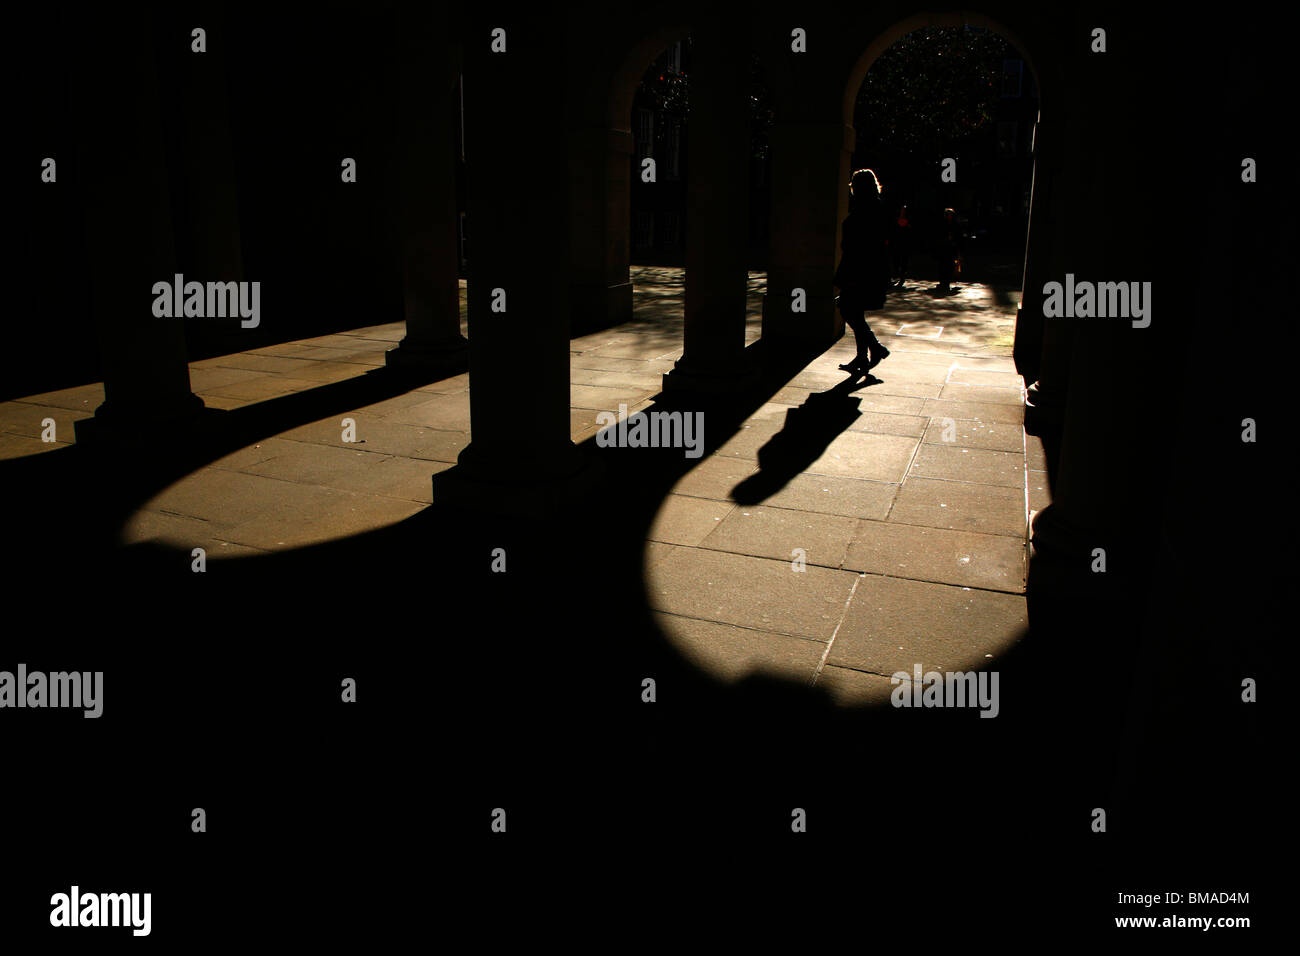 Sunshine and shadows in the arches in Inner Temple, Inns of Court, London, UK - Stock Image